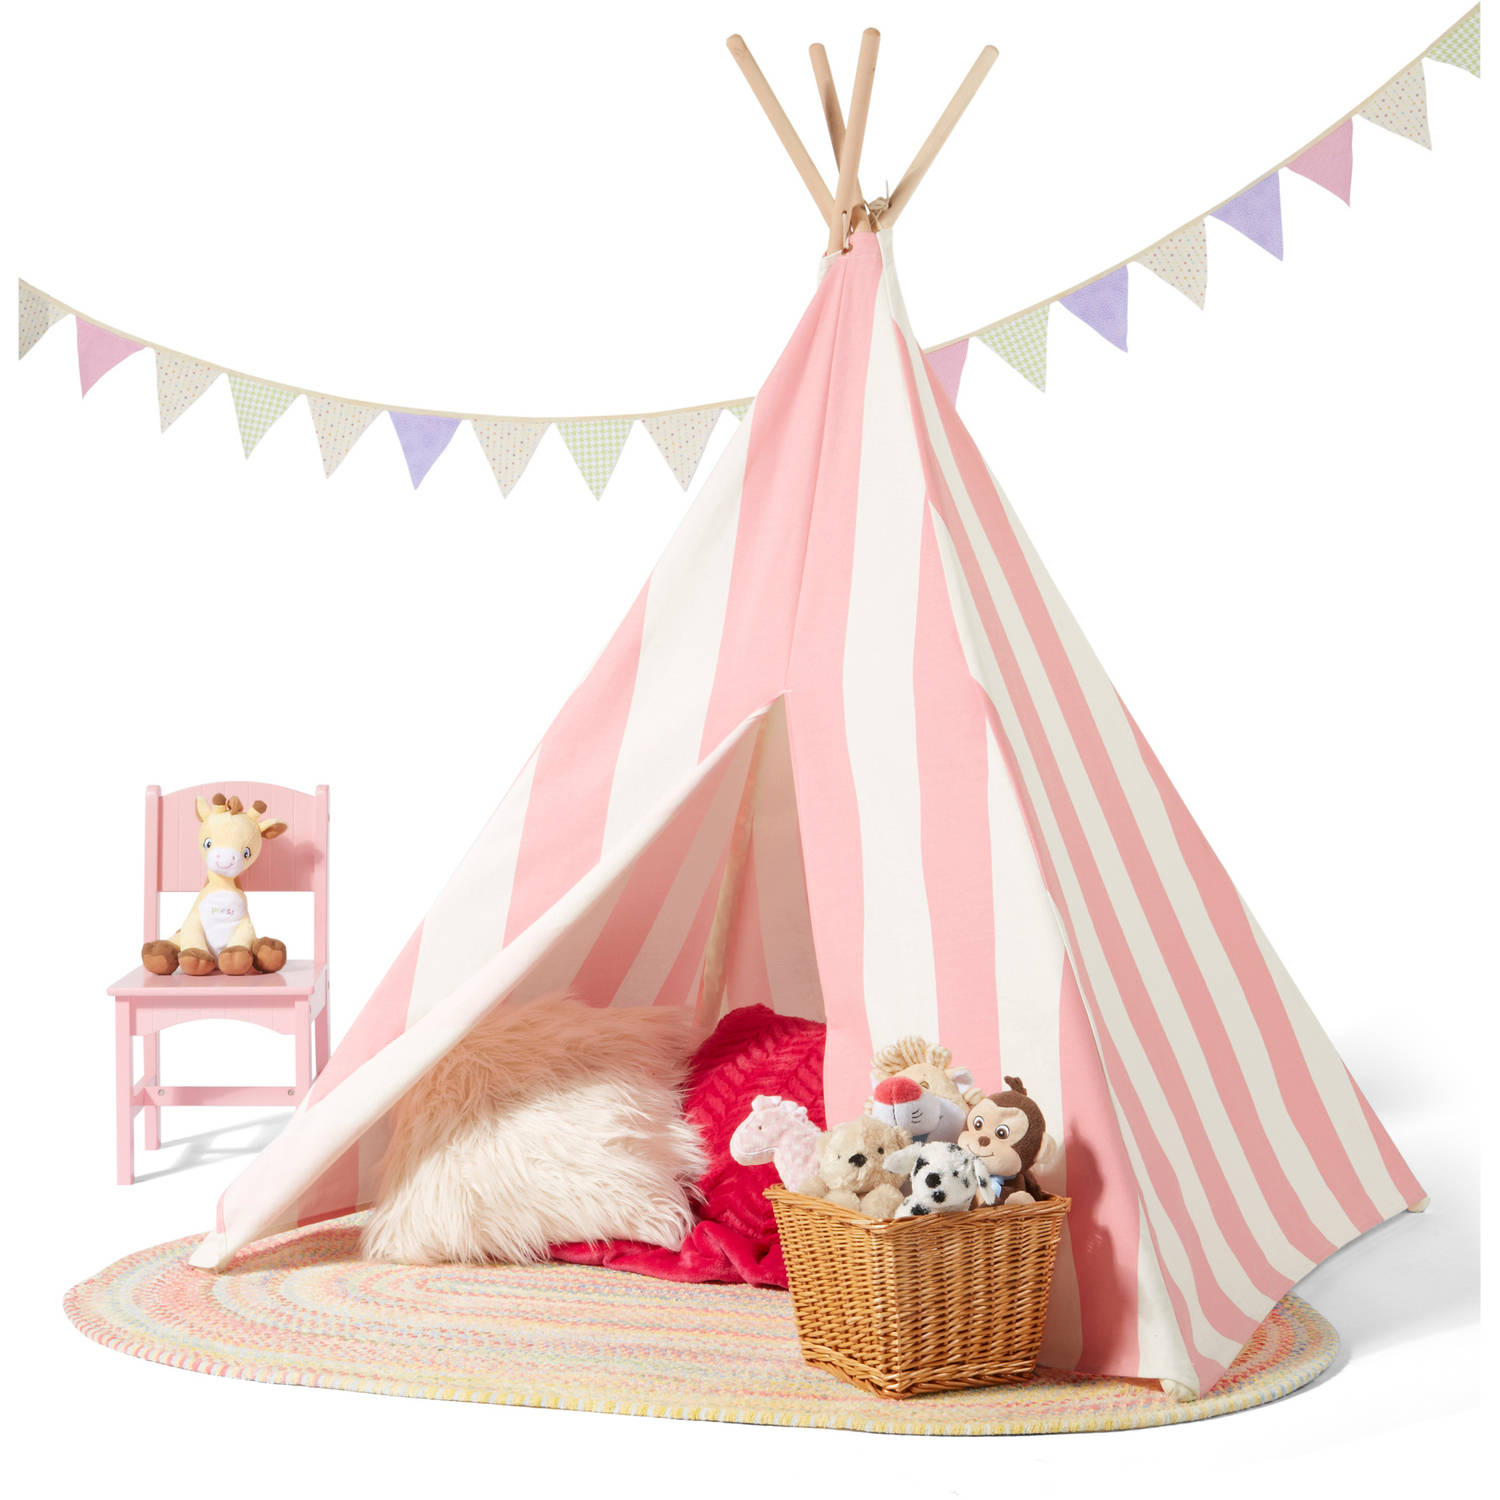 Children's Teepee Tent, Pink/White Stripes